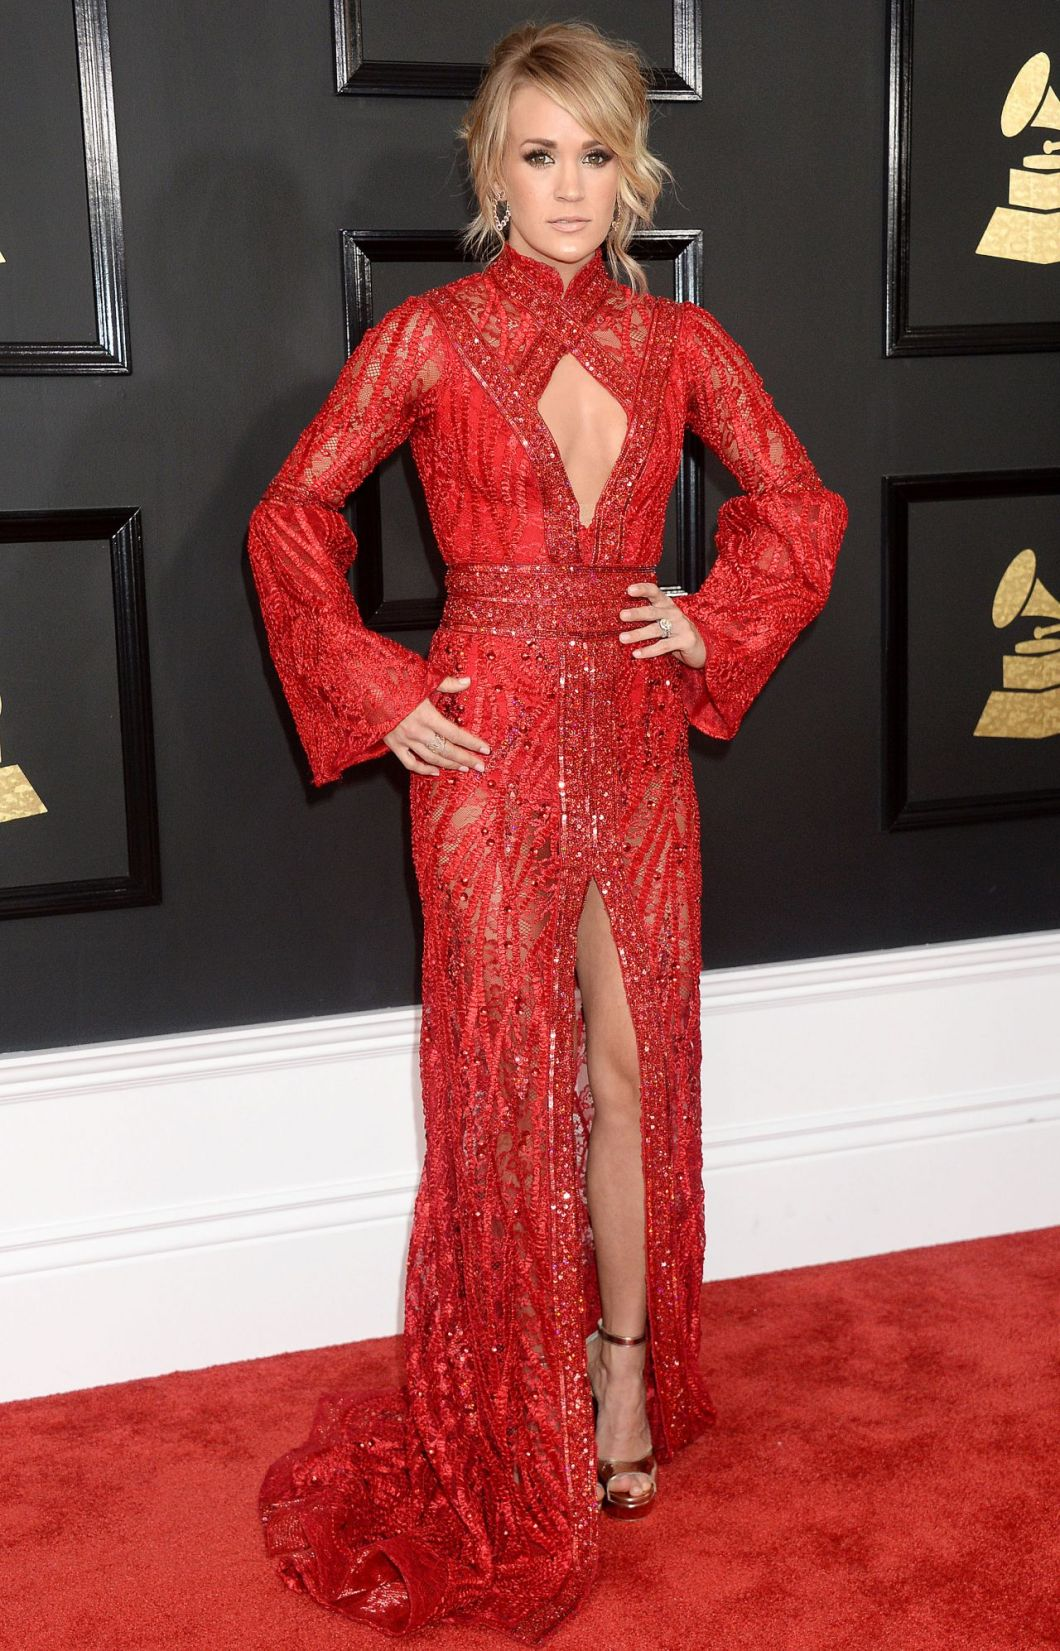 carrie-underwood-on-red-carpet-grammy-awards-in-los-angeles-2-12-2017-1.jpg